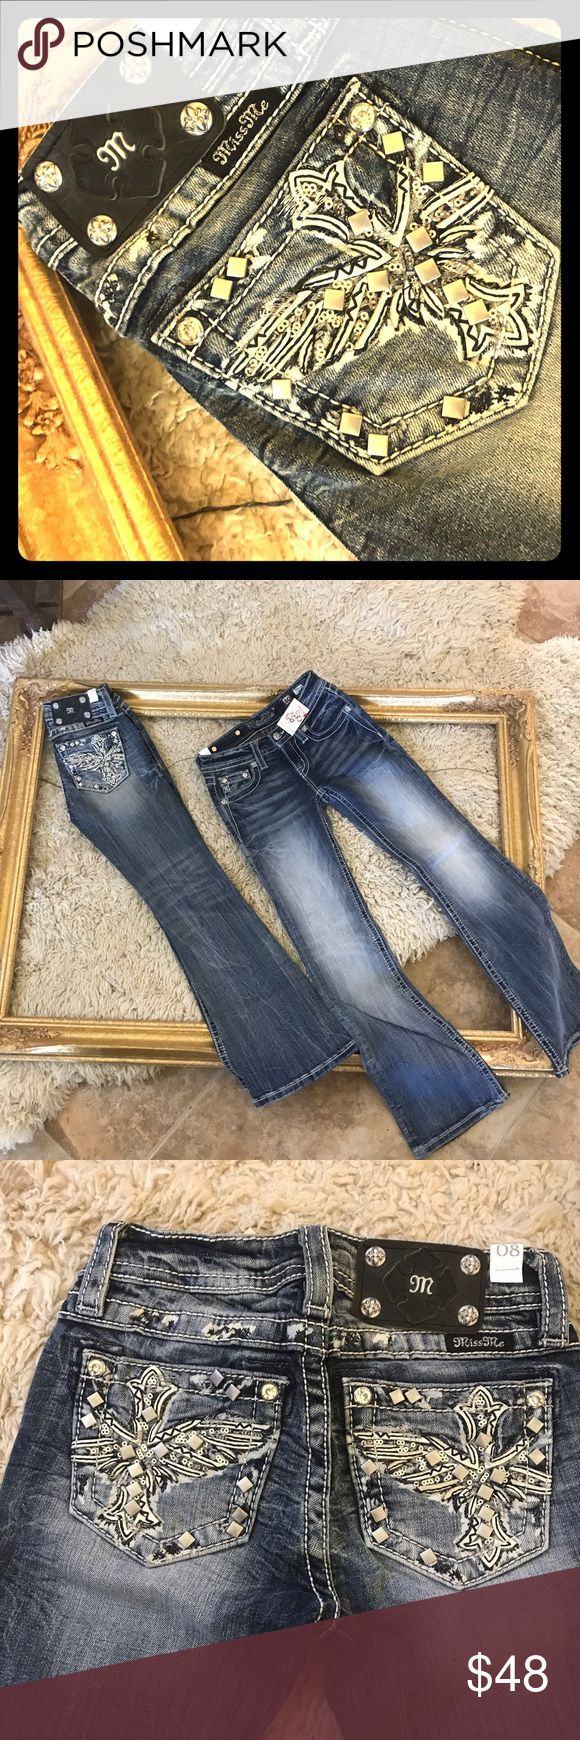 Selling this NWOT!! Girls Miss Me Jeans Bootcut on Poshmark! My username is: dalyfinds2014. #shopmycloset #poshmark #fashion #shopping #style #forsale #Miss Me #Other